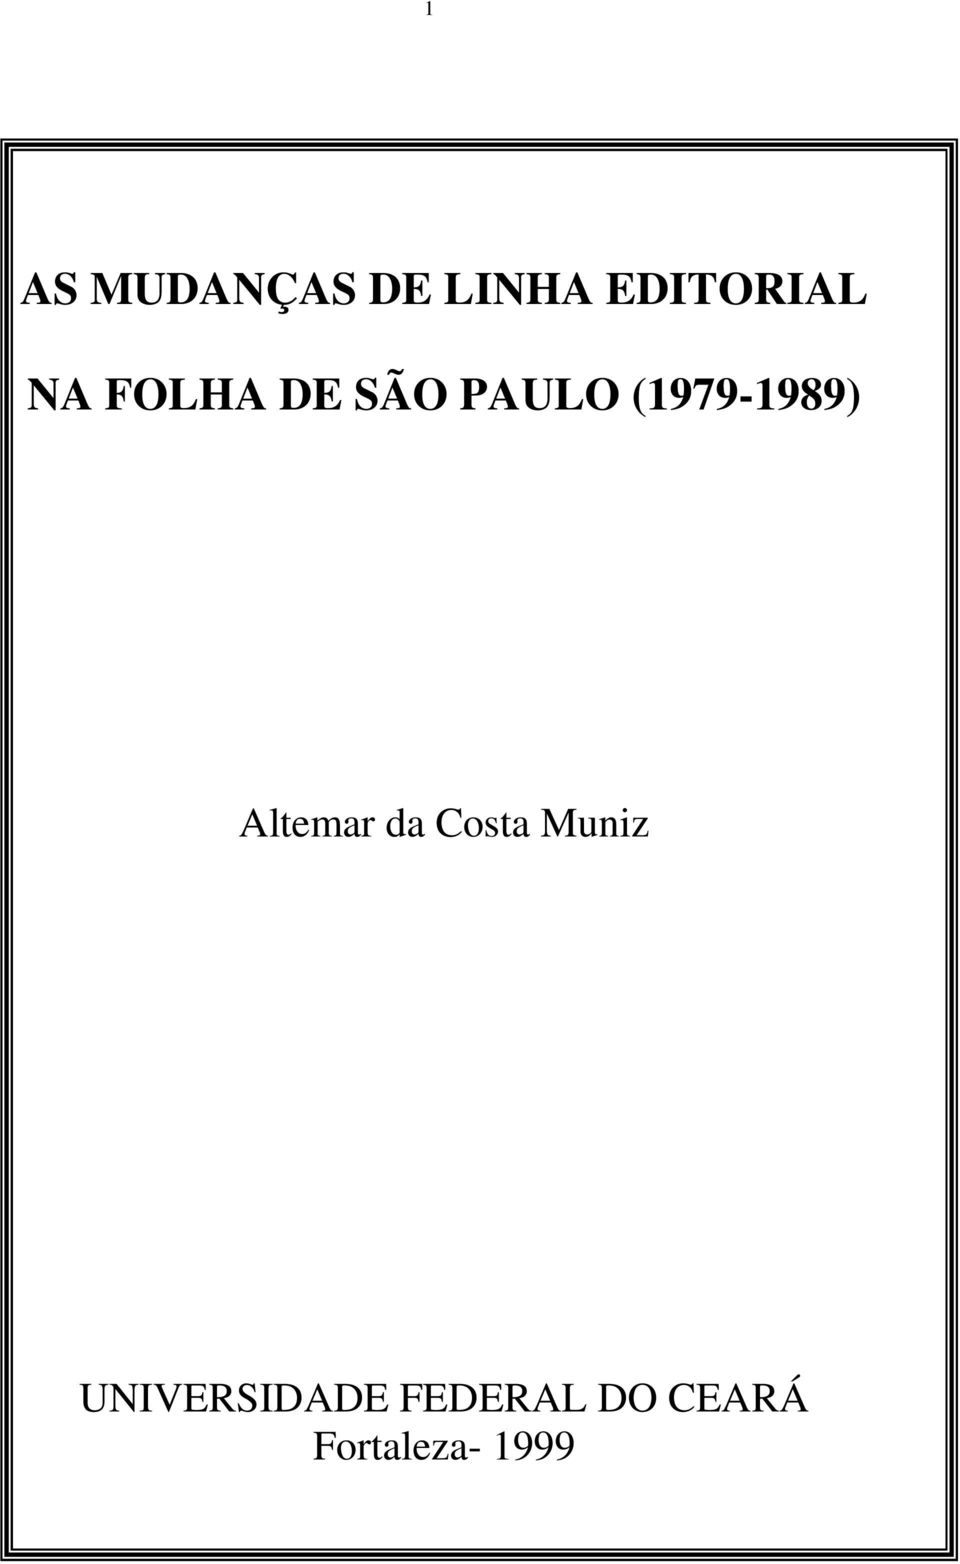 Altemar da Costa Muniz